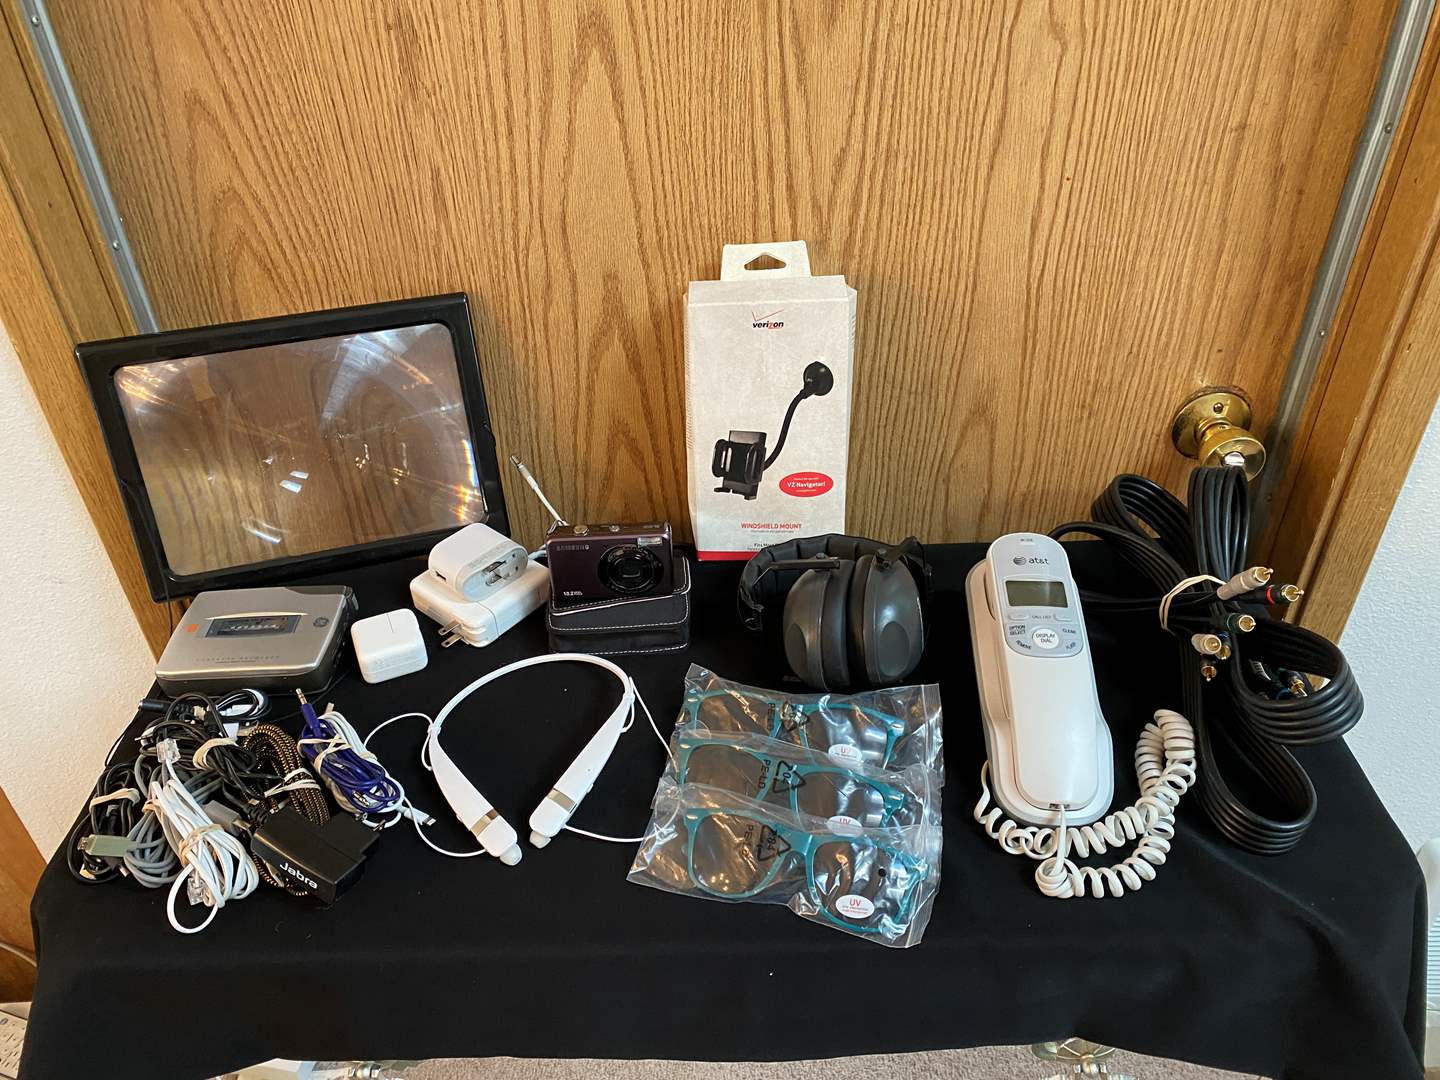 Lot # 39- Misc. Electronics: Samsung Digital Camera, Cassette Player, Phone Chargers, Bluetooth Headphone & More.. (main image)